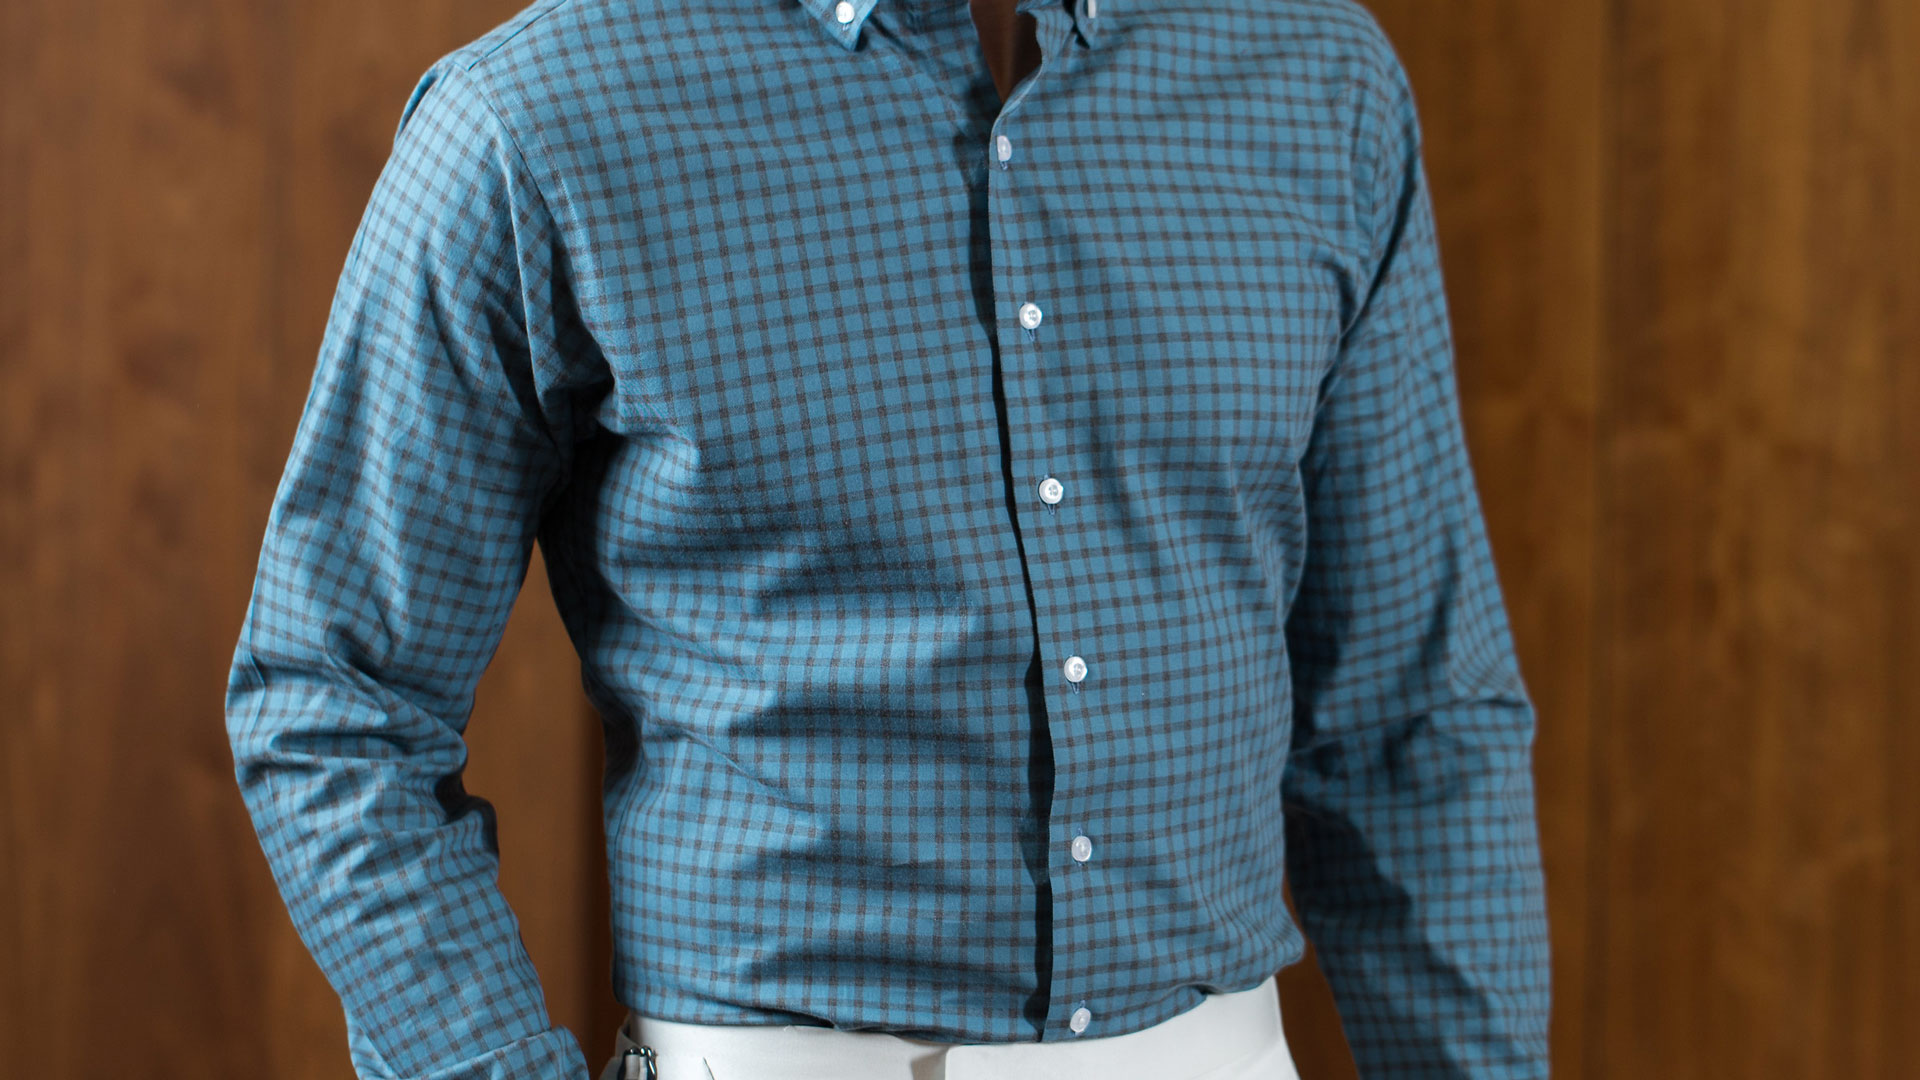 The 5 Men's Clothing Essentials for Spring: Vol. 2